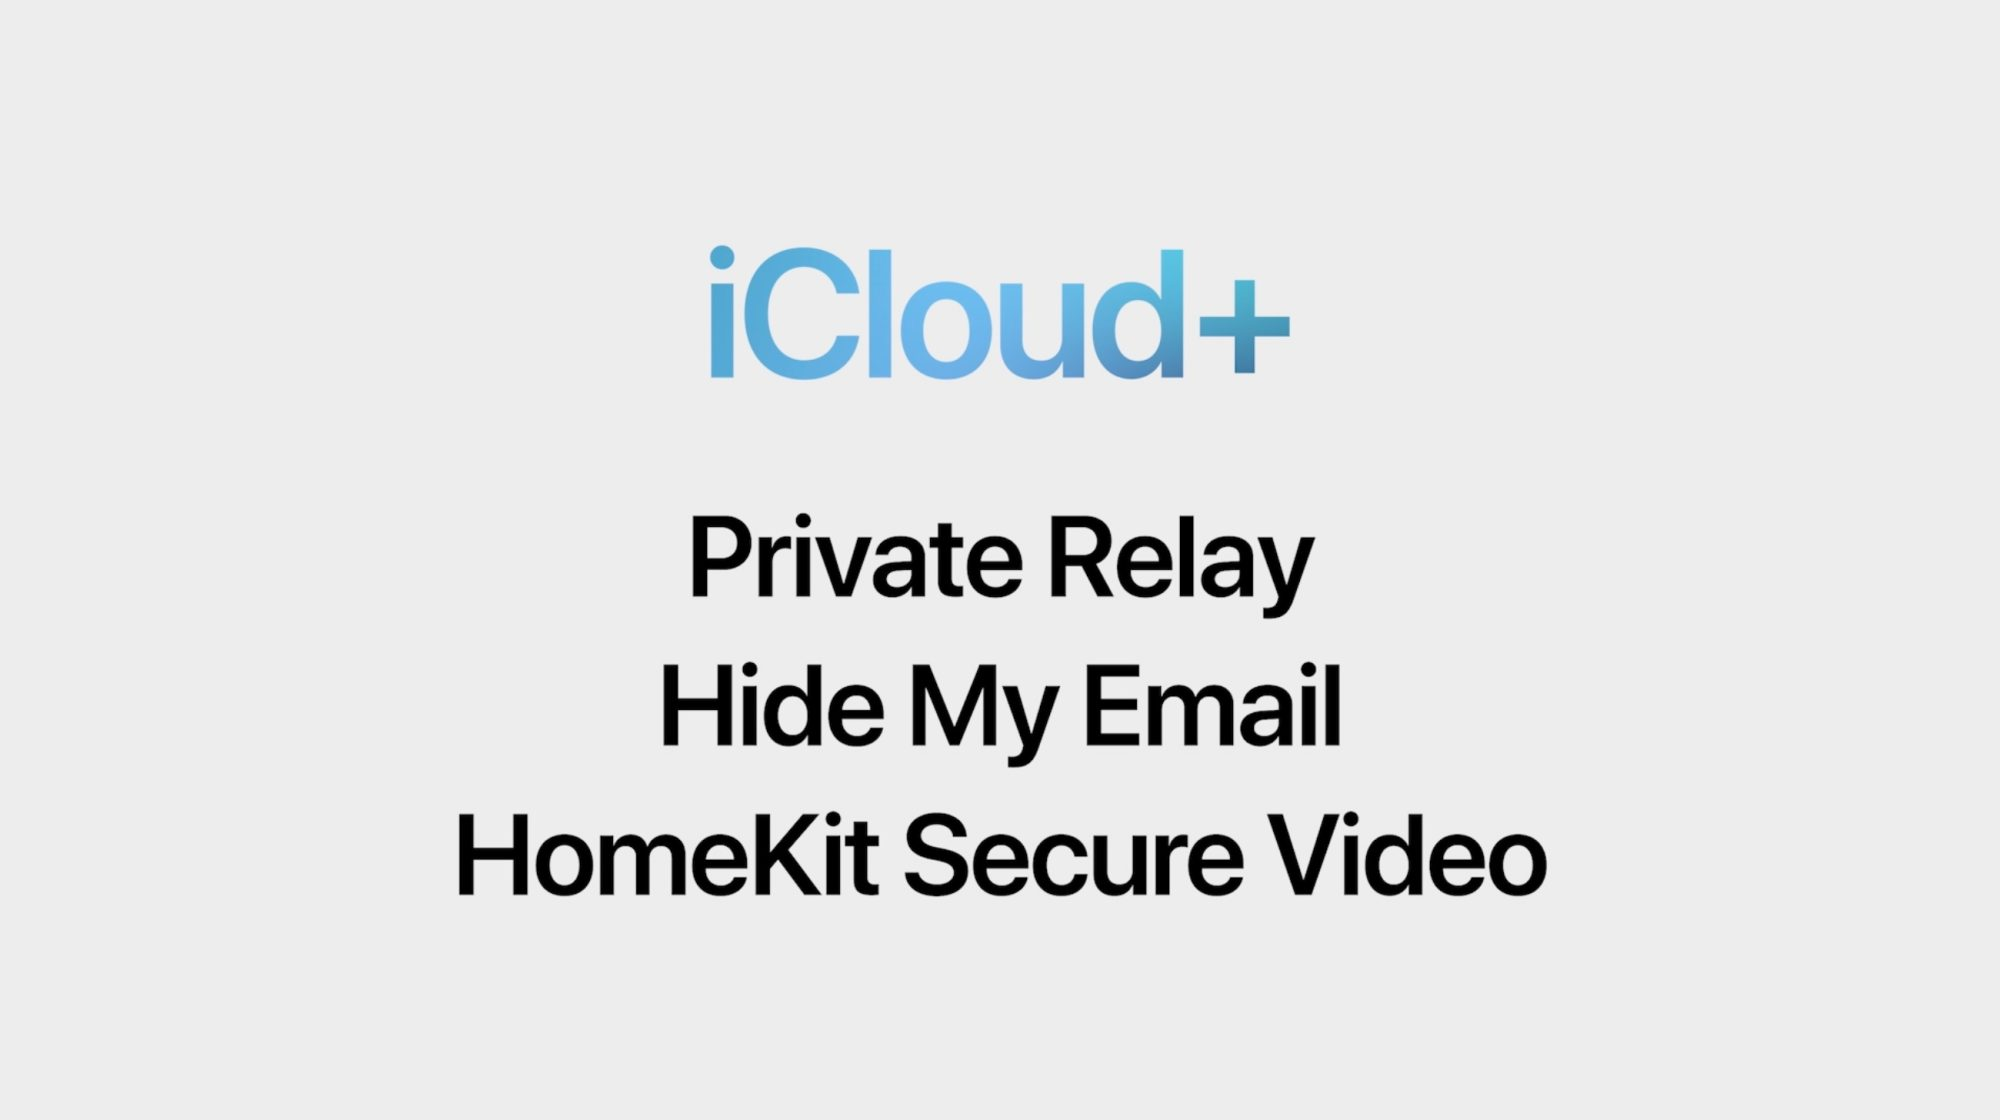 iCloud Plus offers private relay, hide my email, and updates to HomeKit video